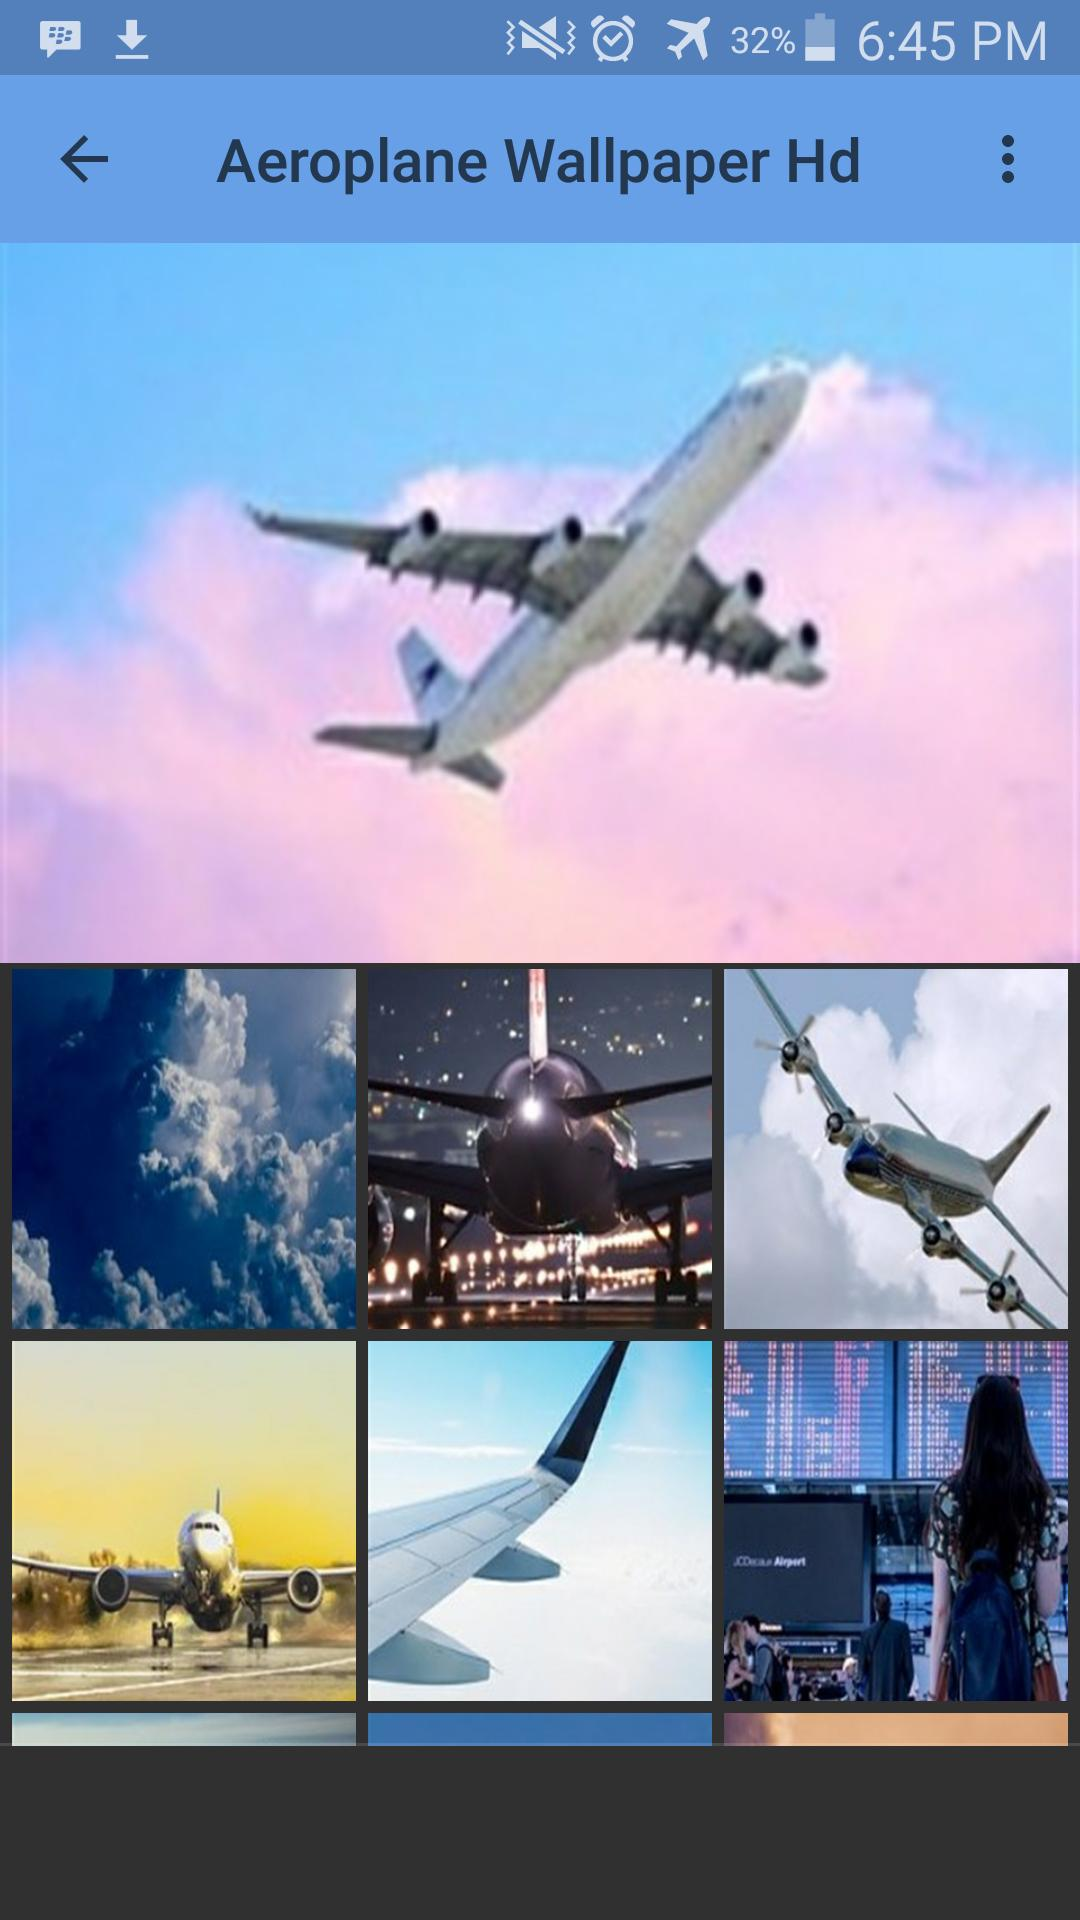 Aeroplane Wallpaper Hd For Android Apk Download